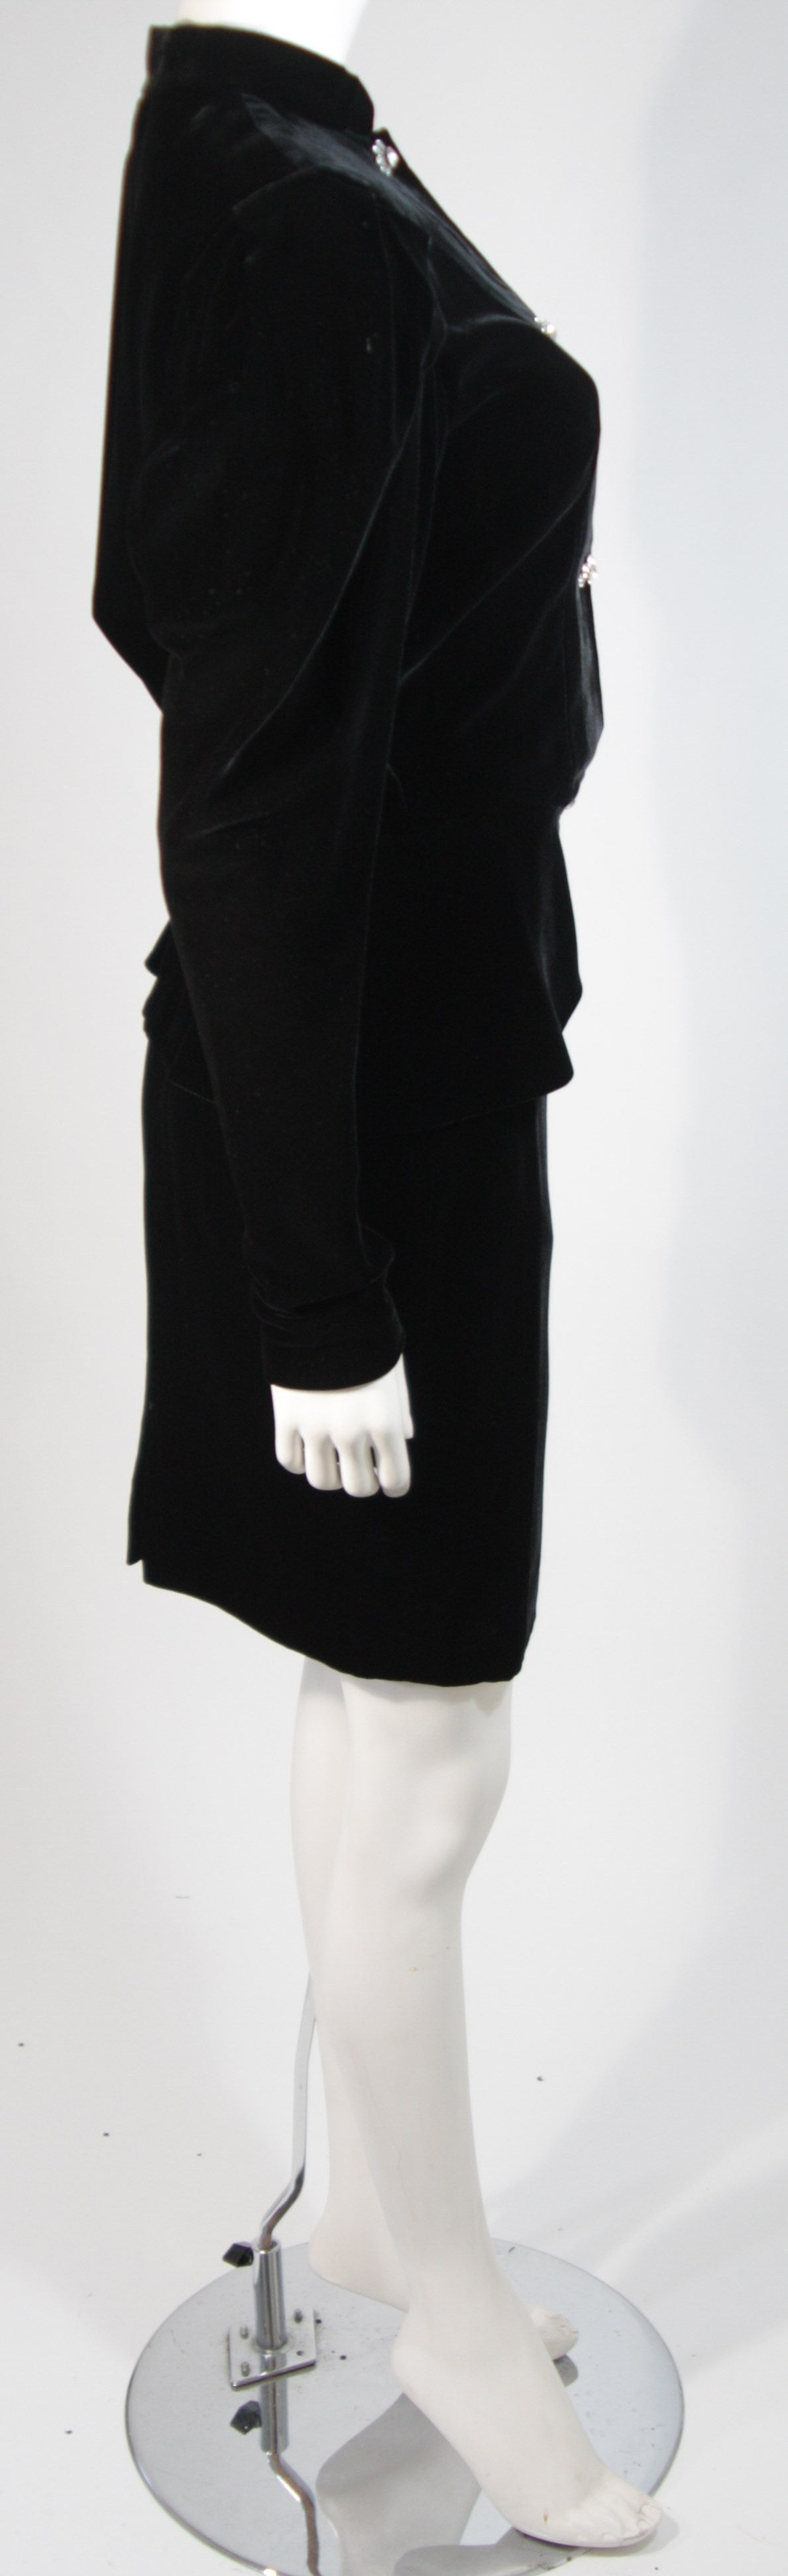 Women's Vicky Tiel Black Velvet Skirt Suit with Rhinestone Buttons Size Small For Sale